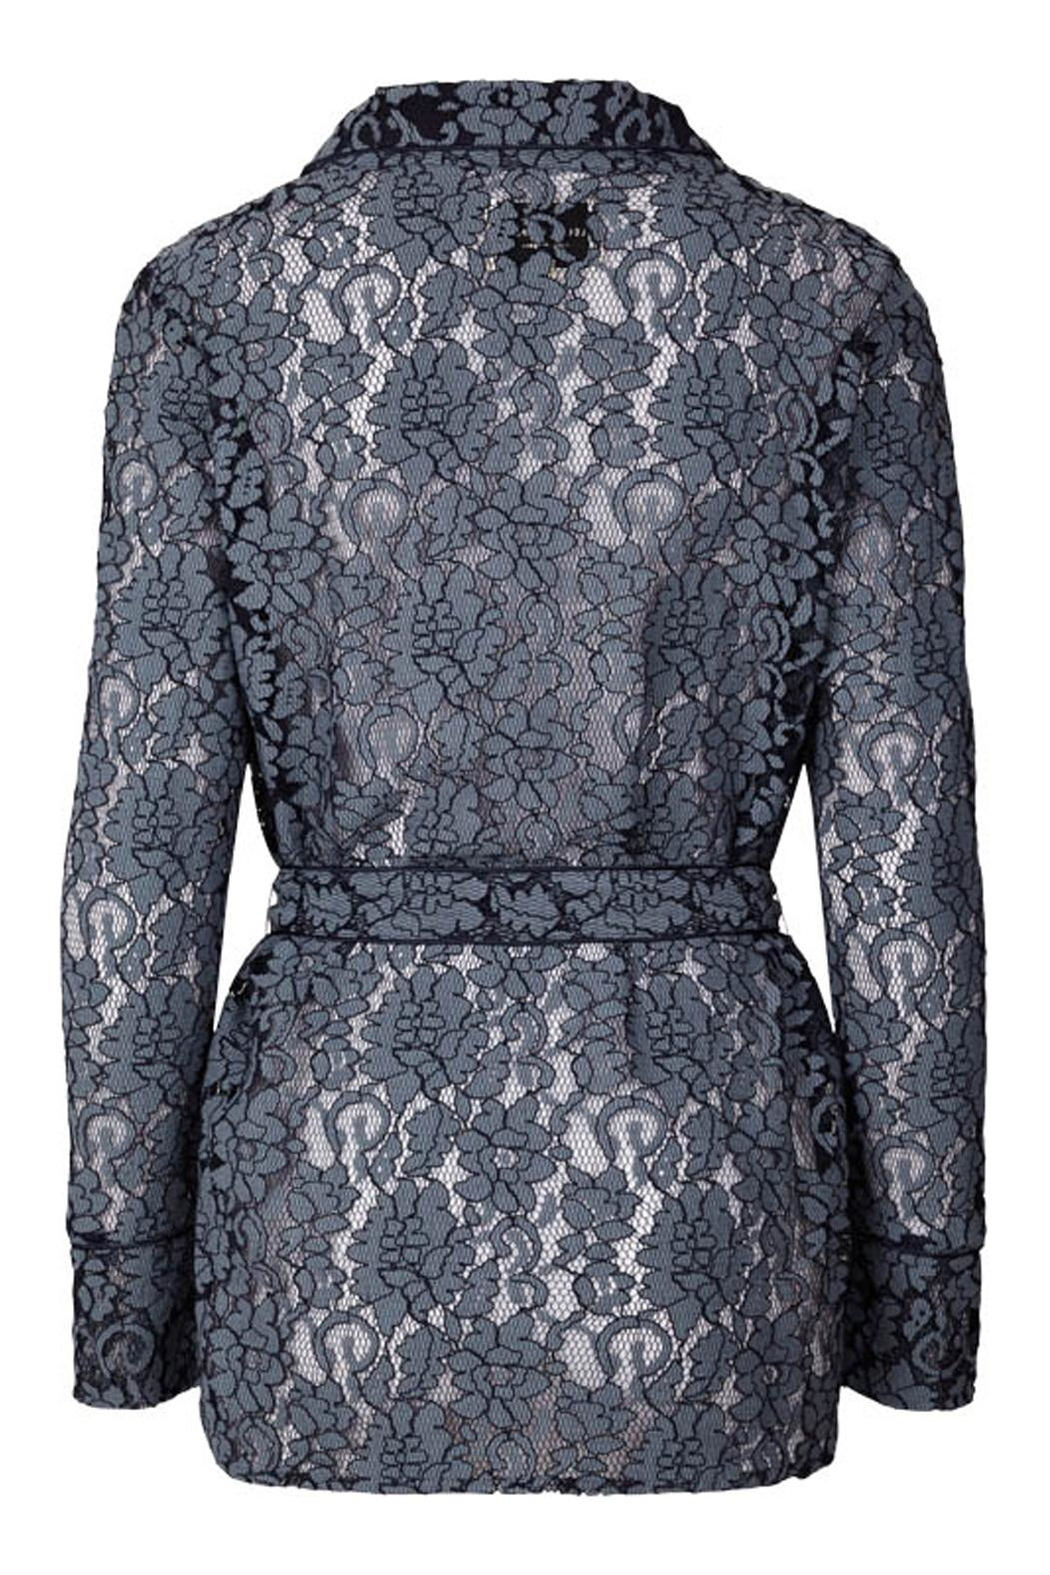 LOLLYS LAUNDRY Blue Lace Jacket - Front Full Image